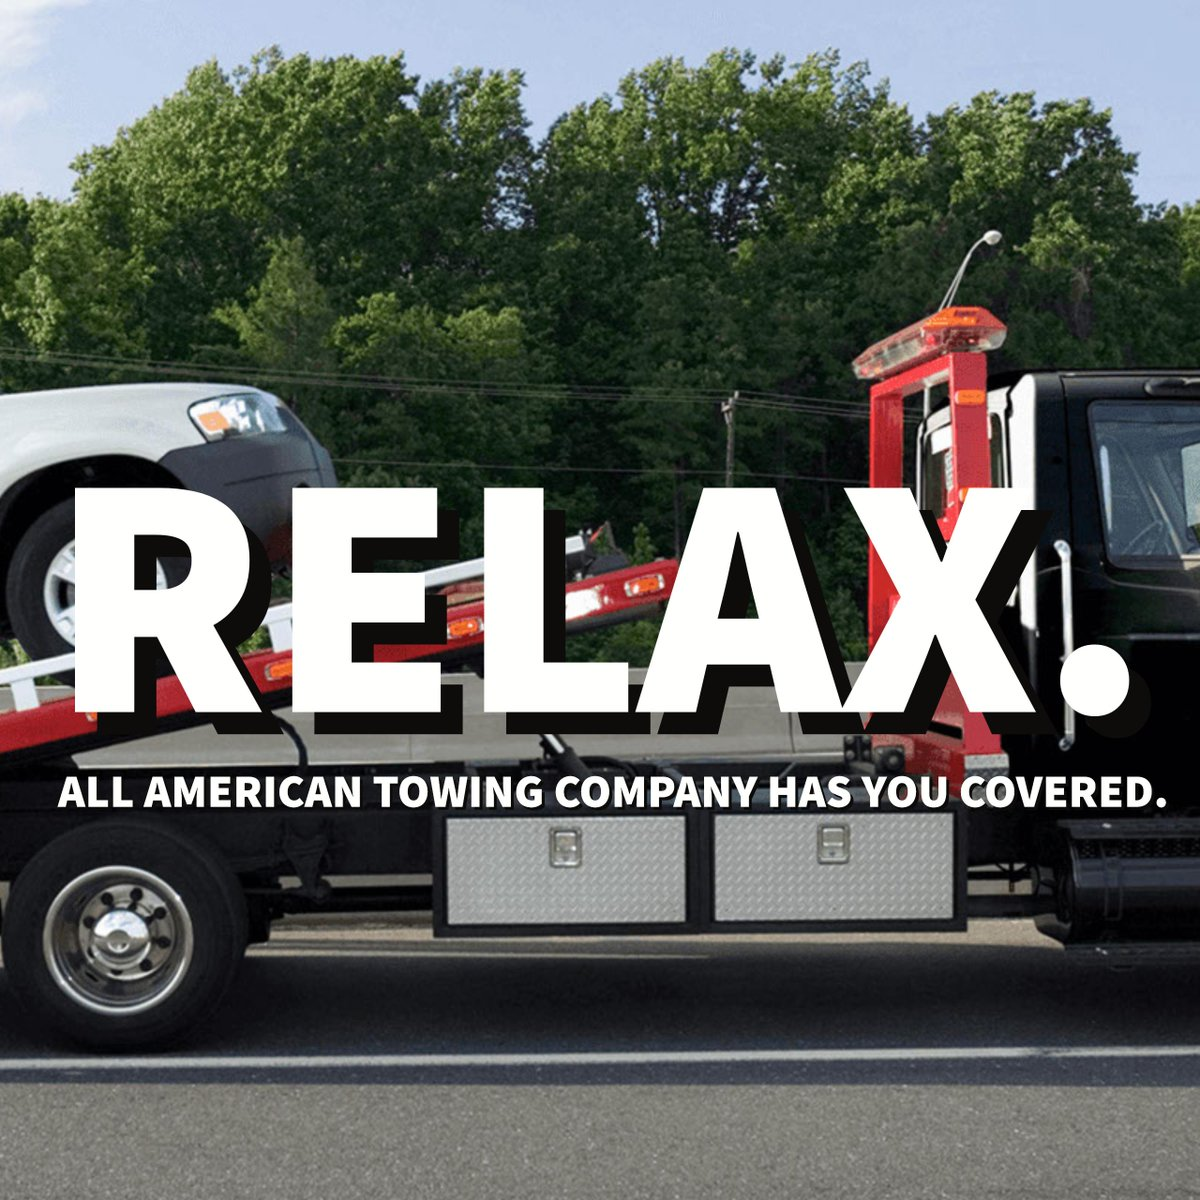 All American Towing (@AllAmerTowCo) | Twitter